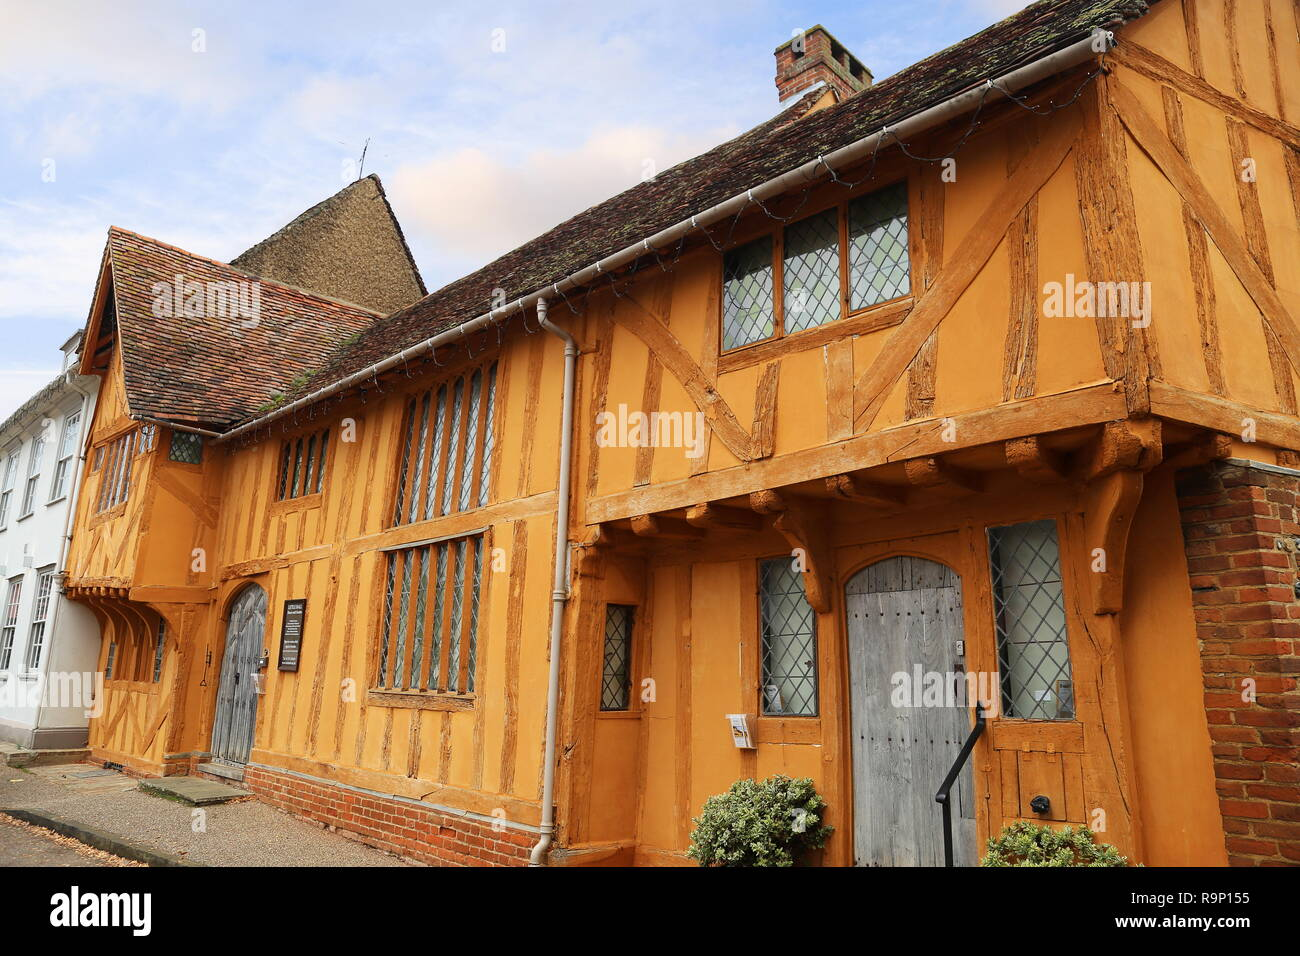 Little Hall Museum, Market Place, Lavenham, Babergh district, Suffolk, East Anglia, England, Great Britain, United Kingdom, UK, Europe - Stock Image